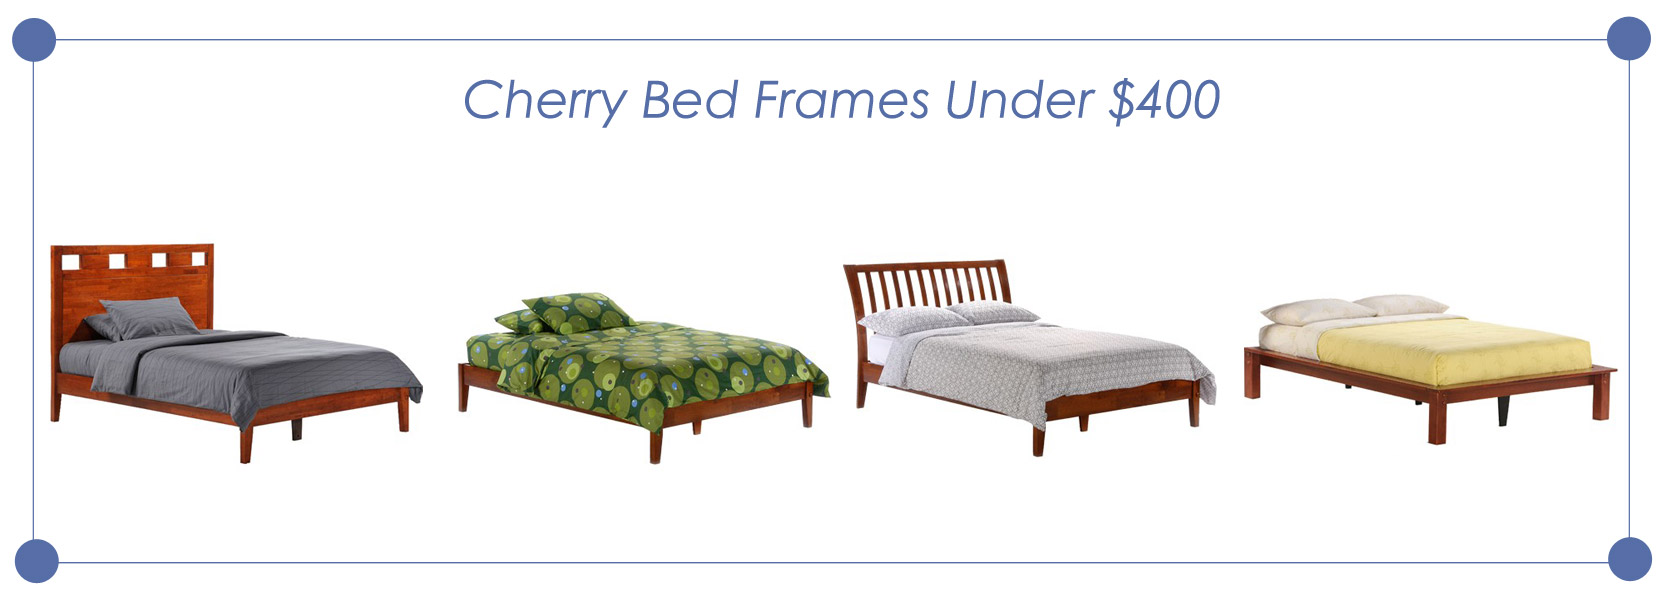 Cherry bed frames